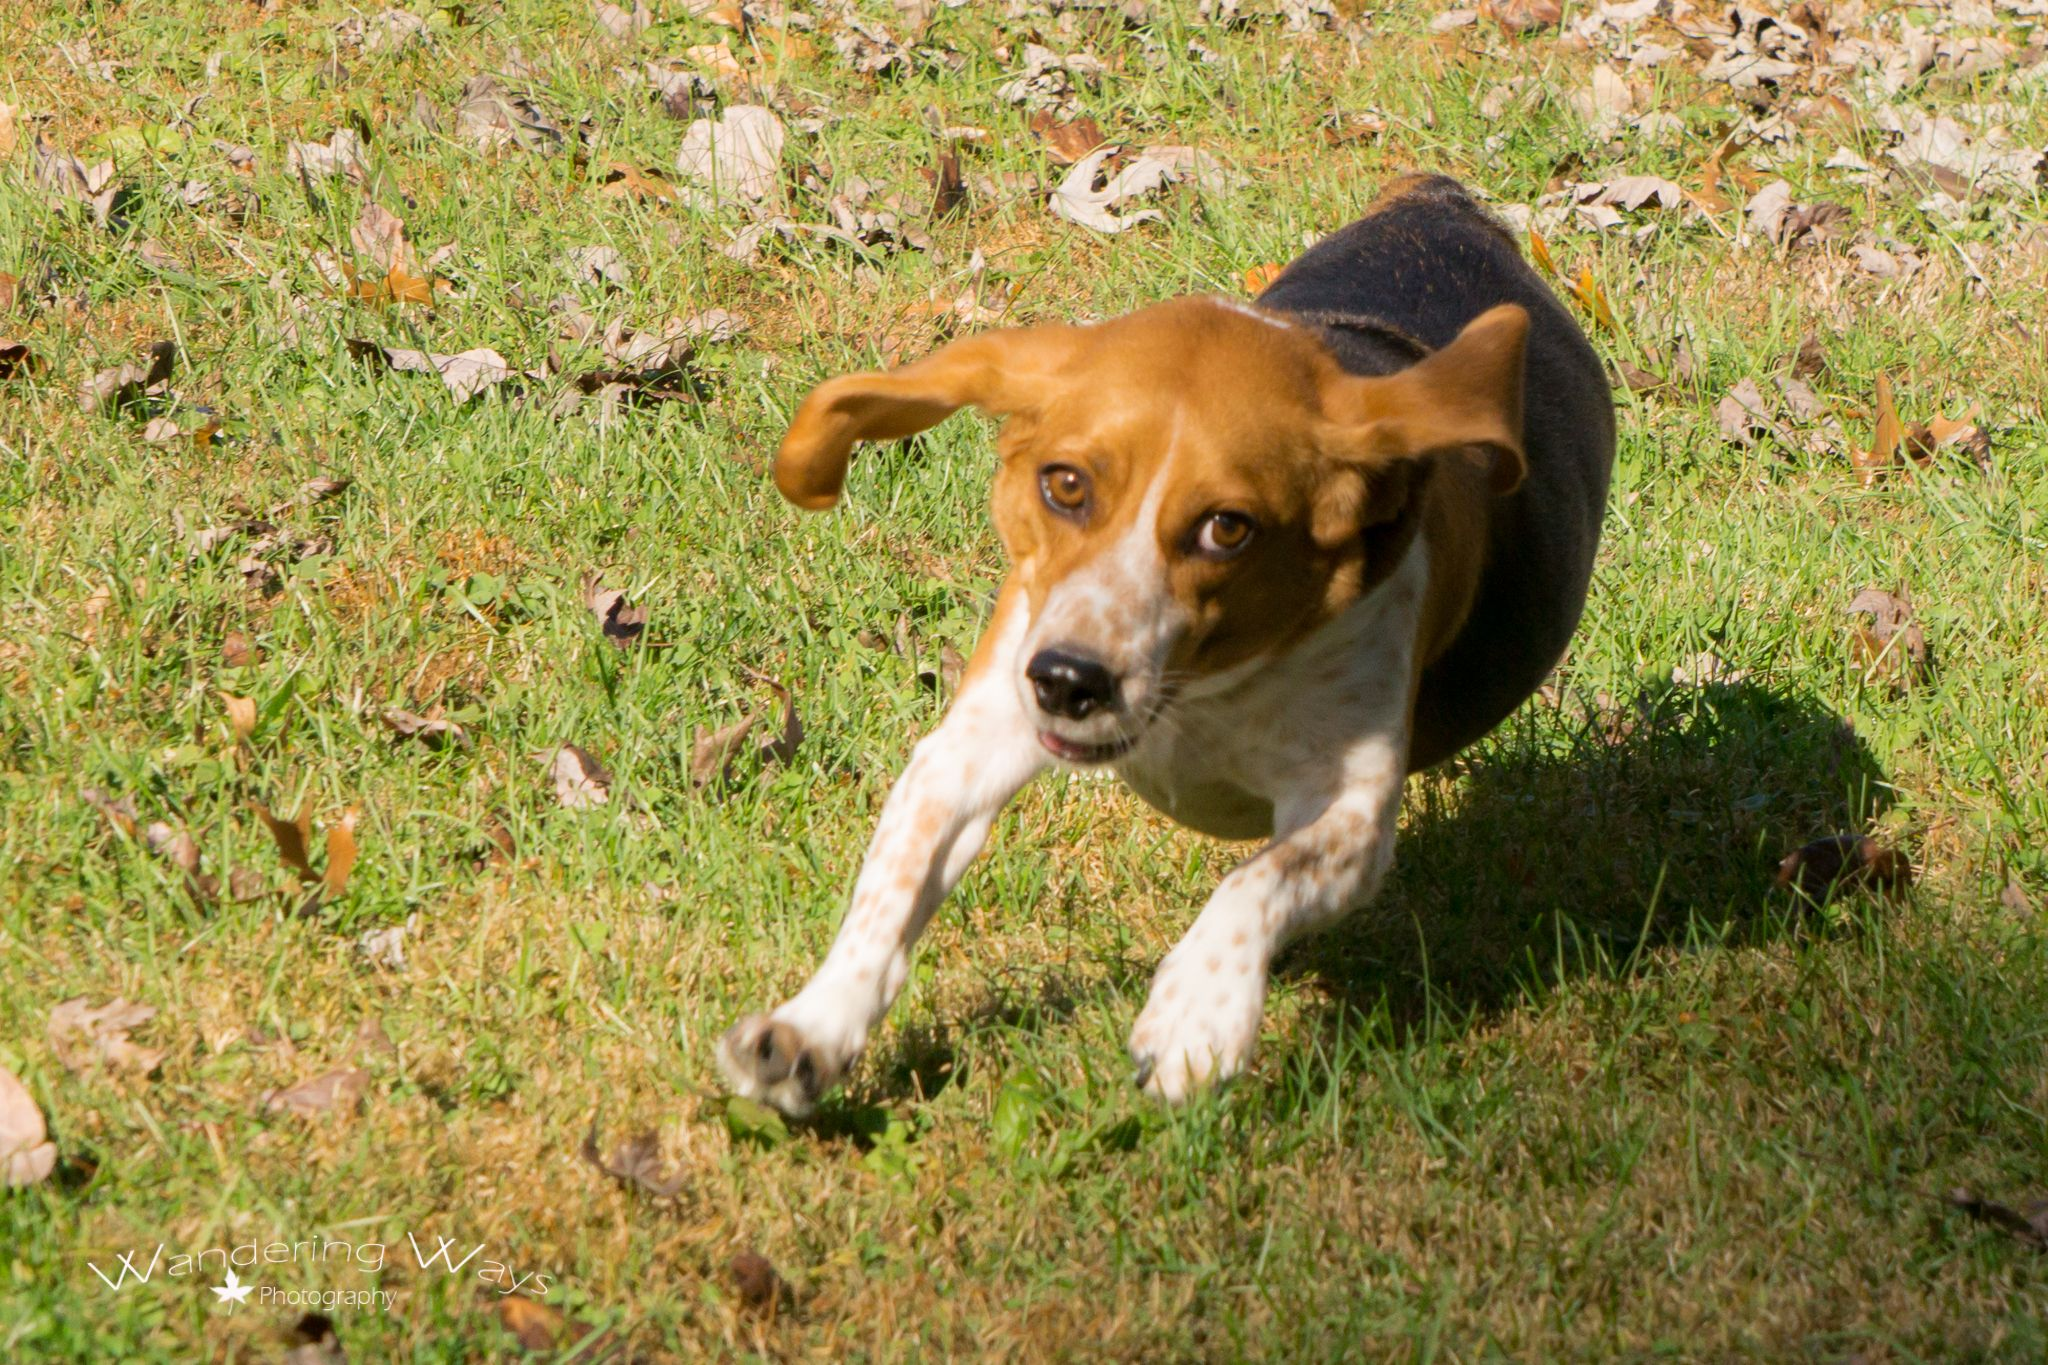 Dexter the beagle getting exercise in Sullivan Indiana captured by Wandering Ways Photography- Amy 2016